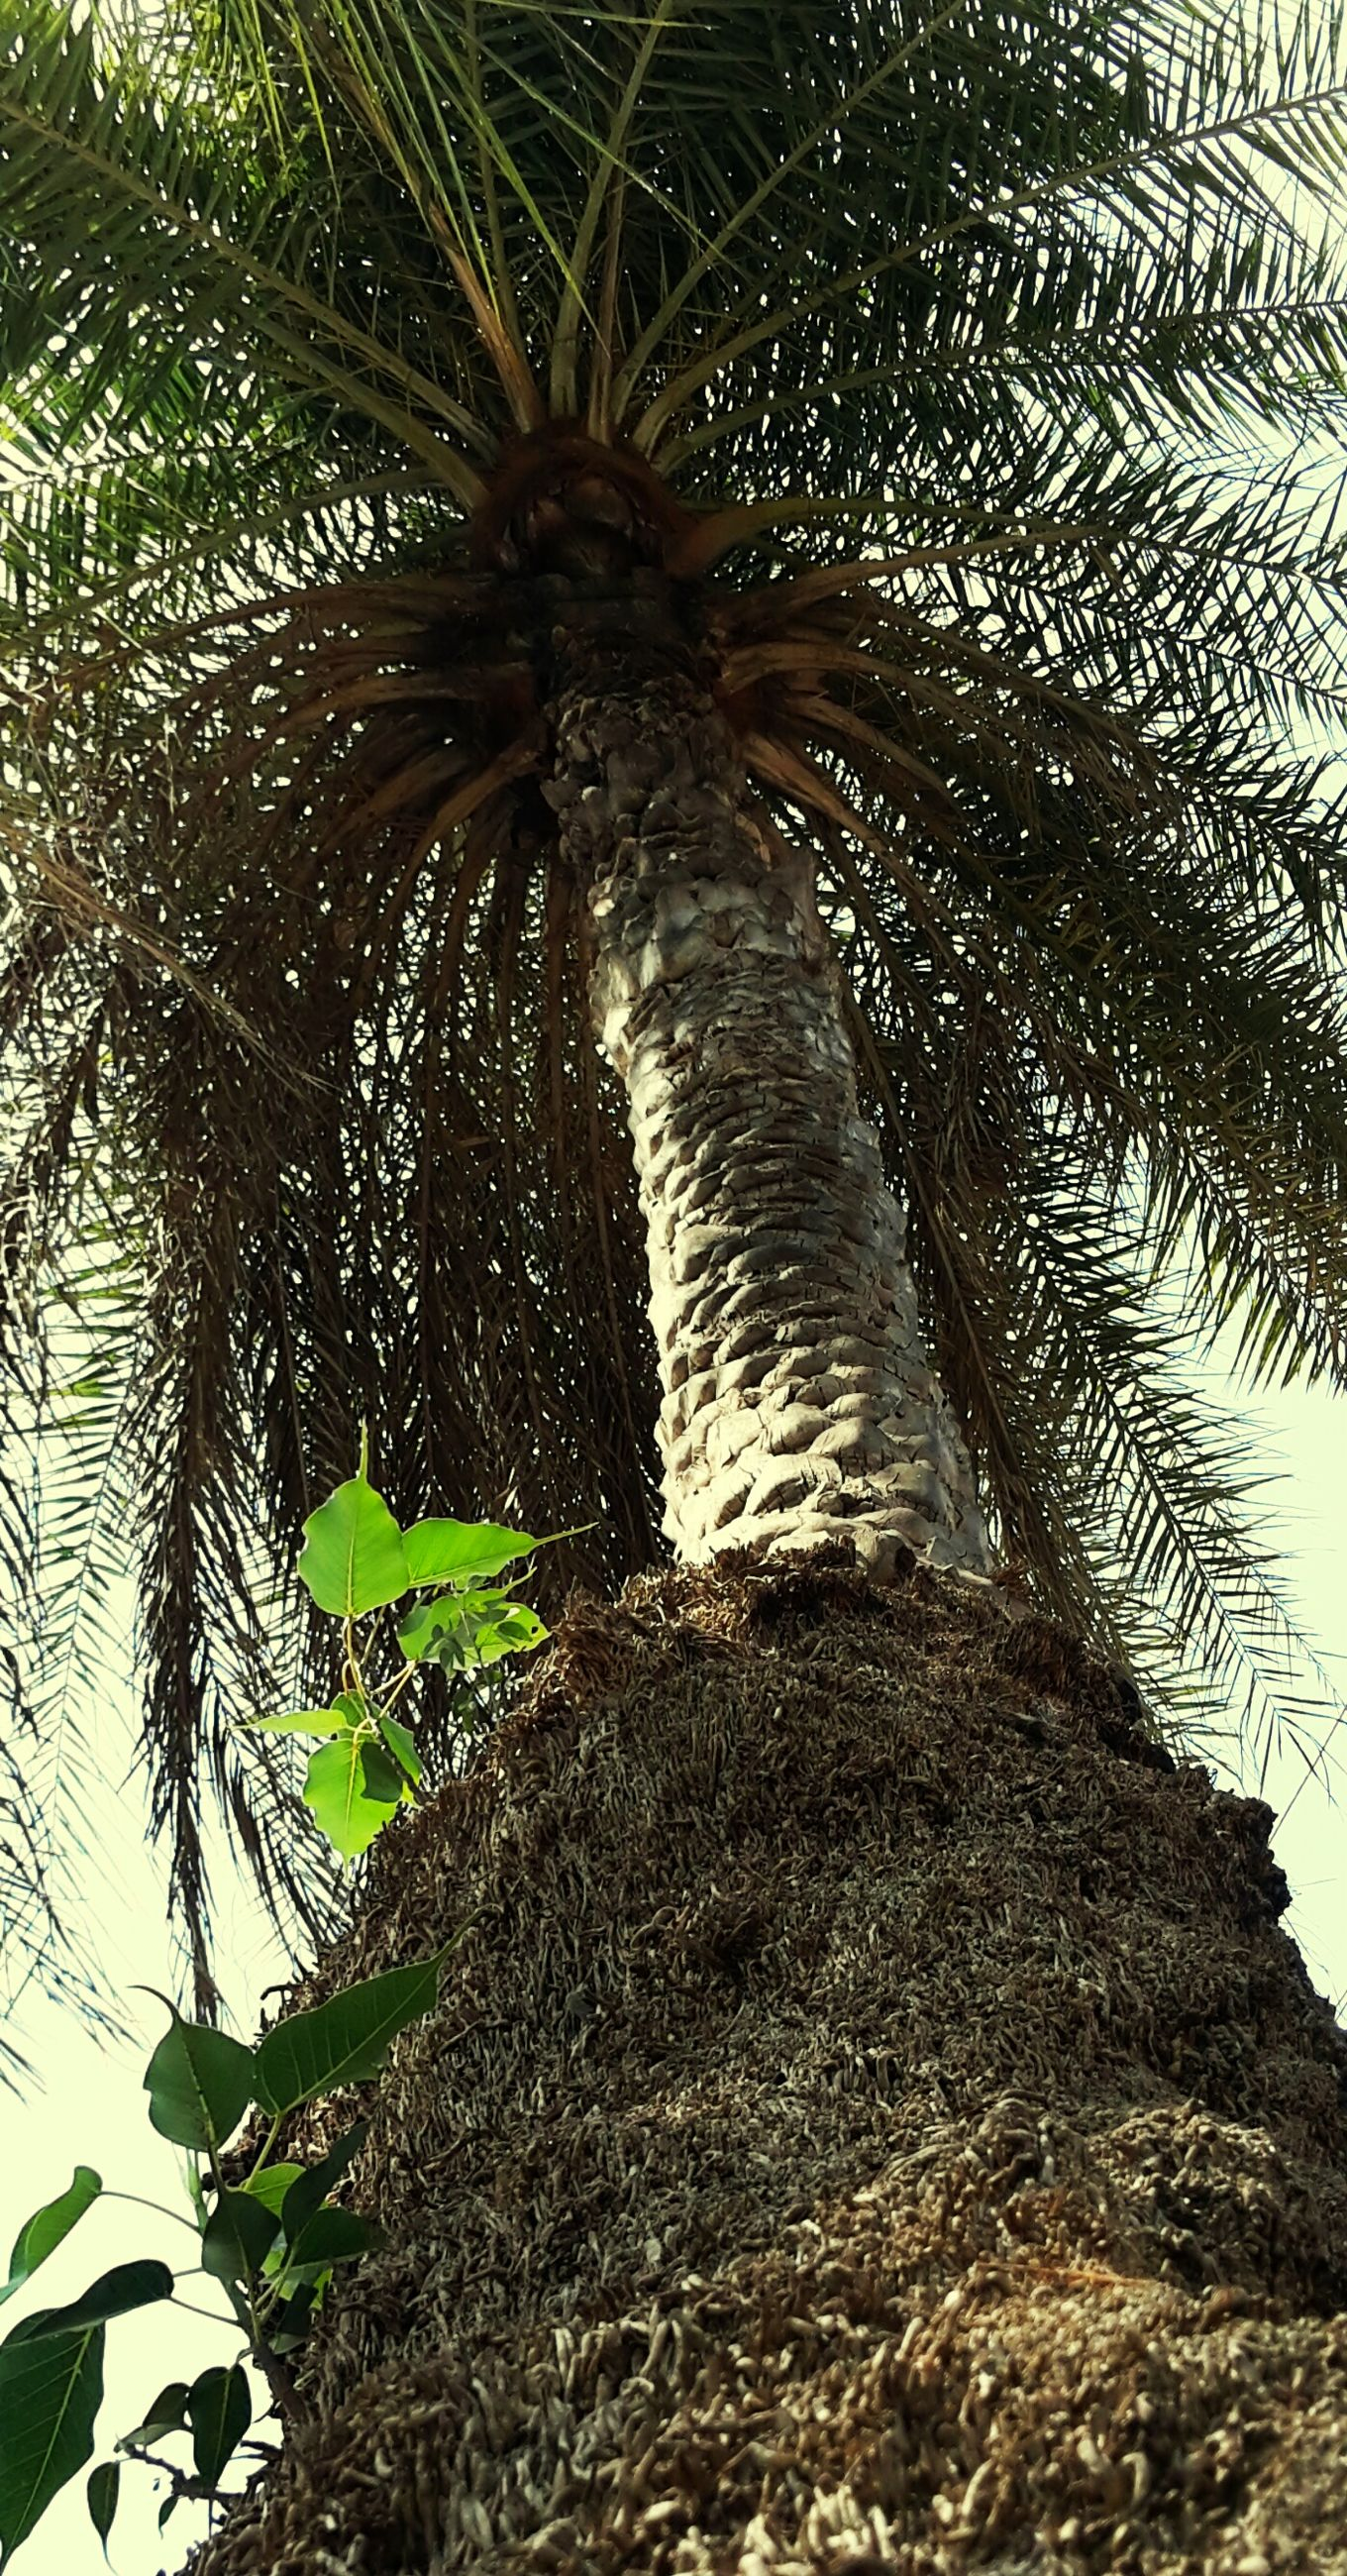 leaf, tree, growth, nature, plant, low angle view, palm tree, branch, day, outdoors, tranquility, no people, beauty in nature, sunlight, tree trunk, green color, close-up, sky, wood - material, natural pattern